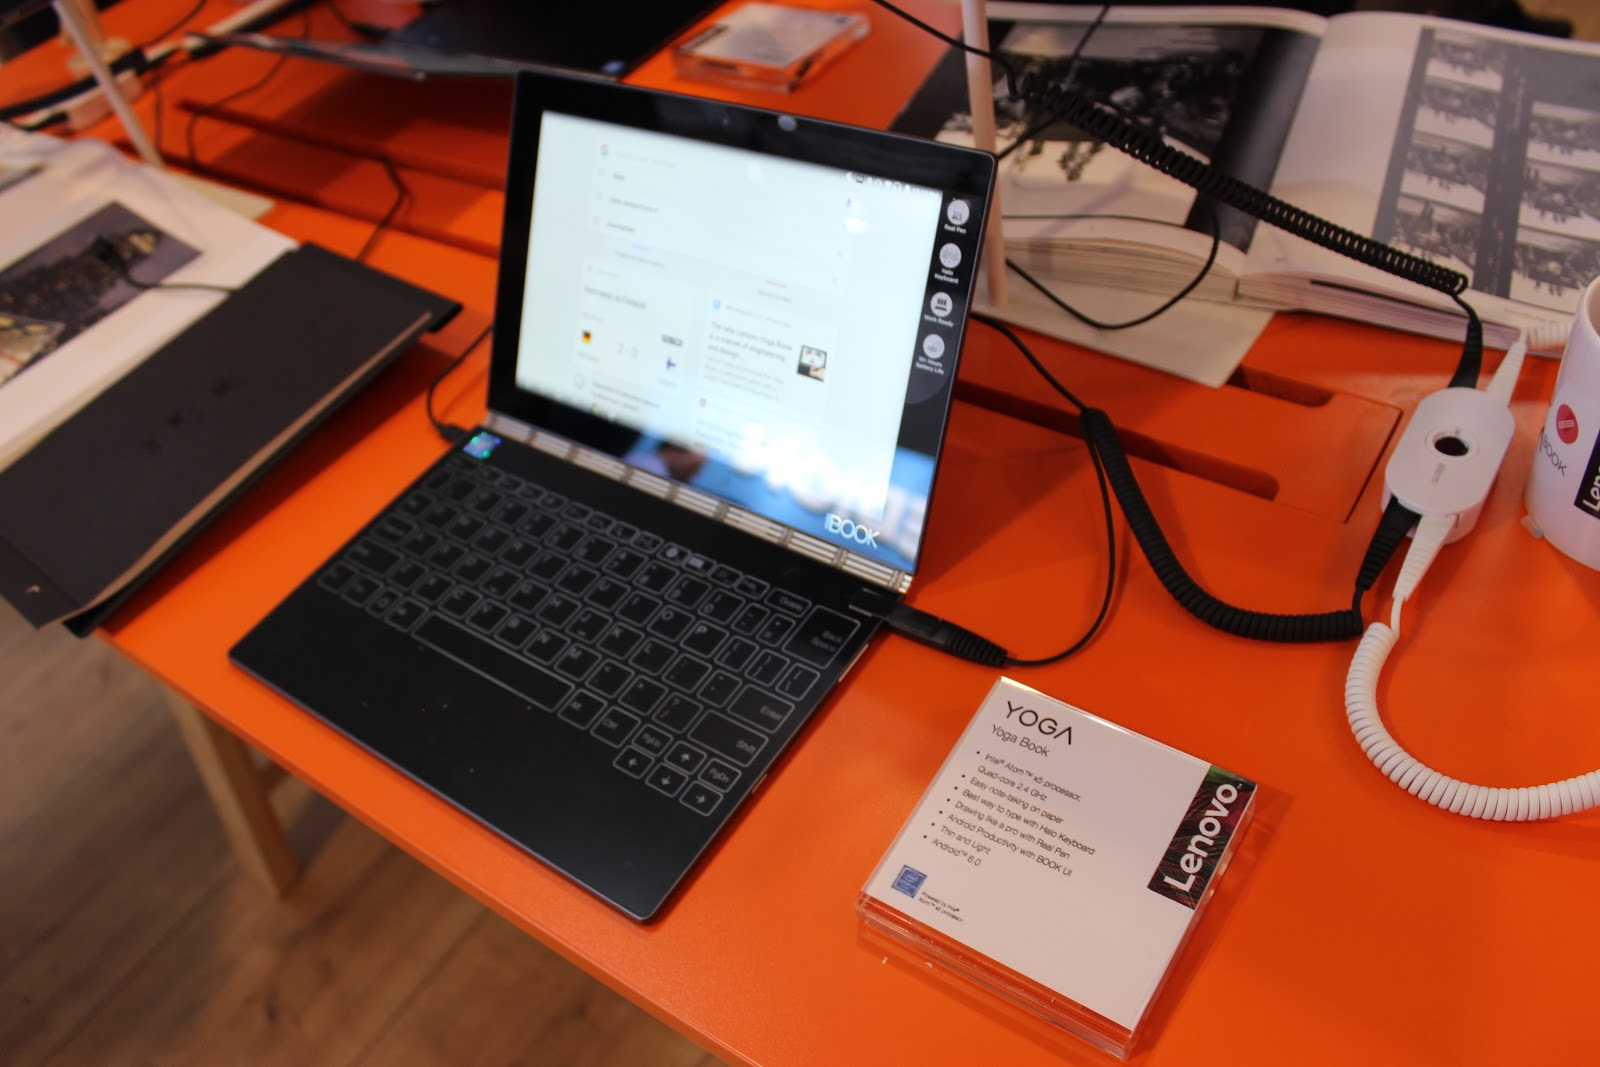 Гвоздь программы: Lenovo YOGA Book на IFA 2016 - 2